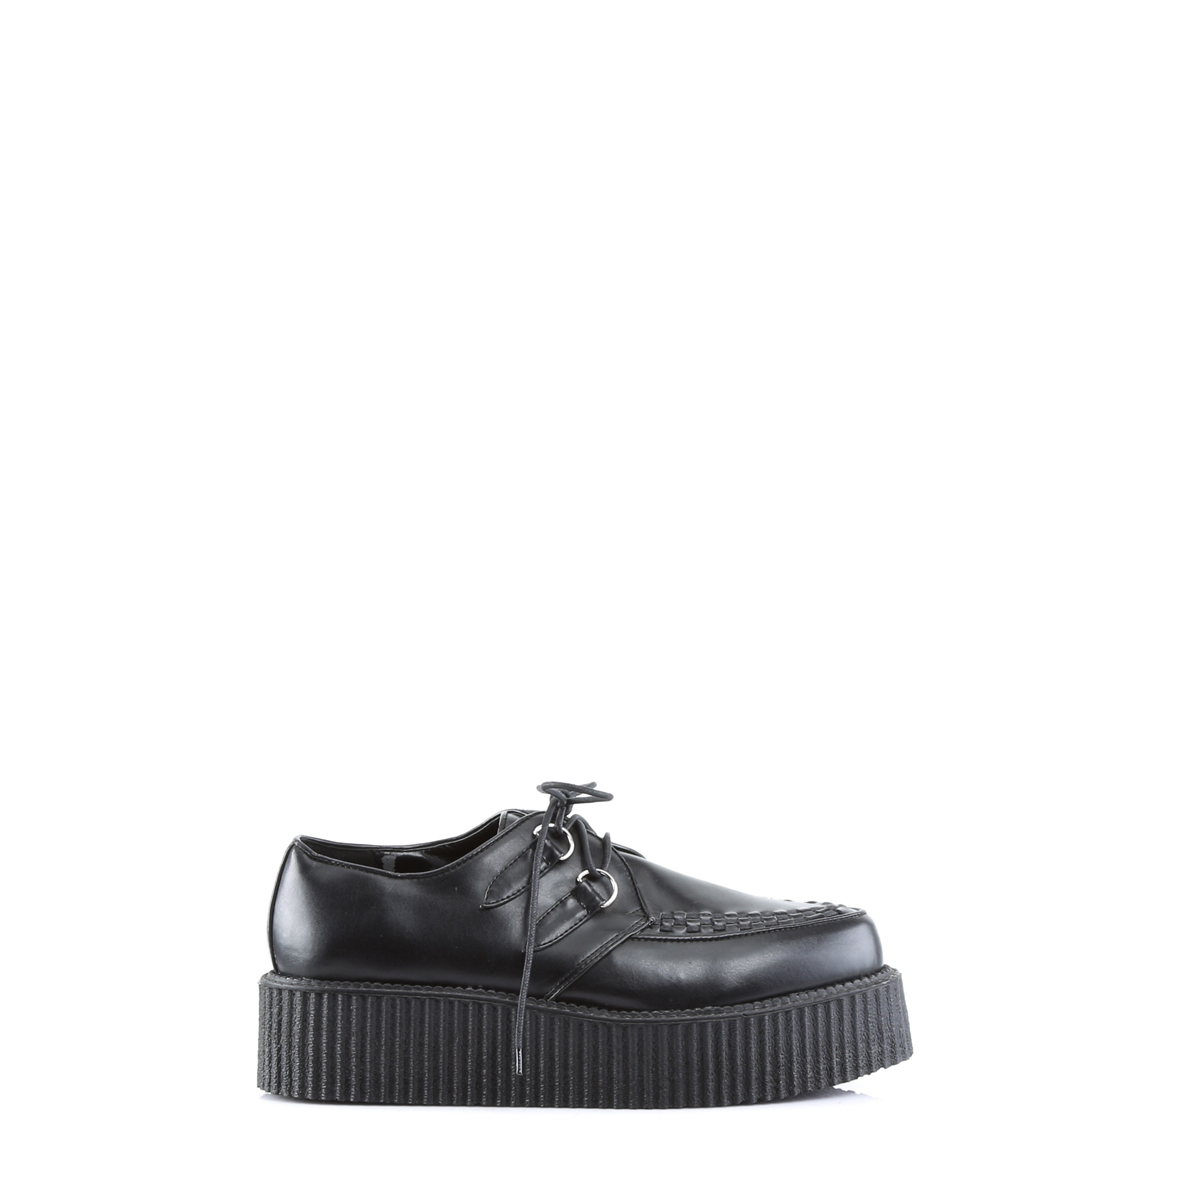 v-creeper-502-b-pu13